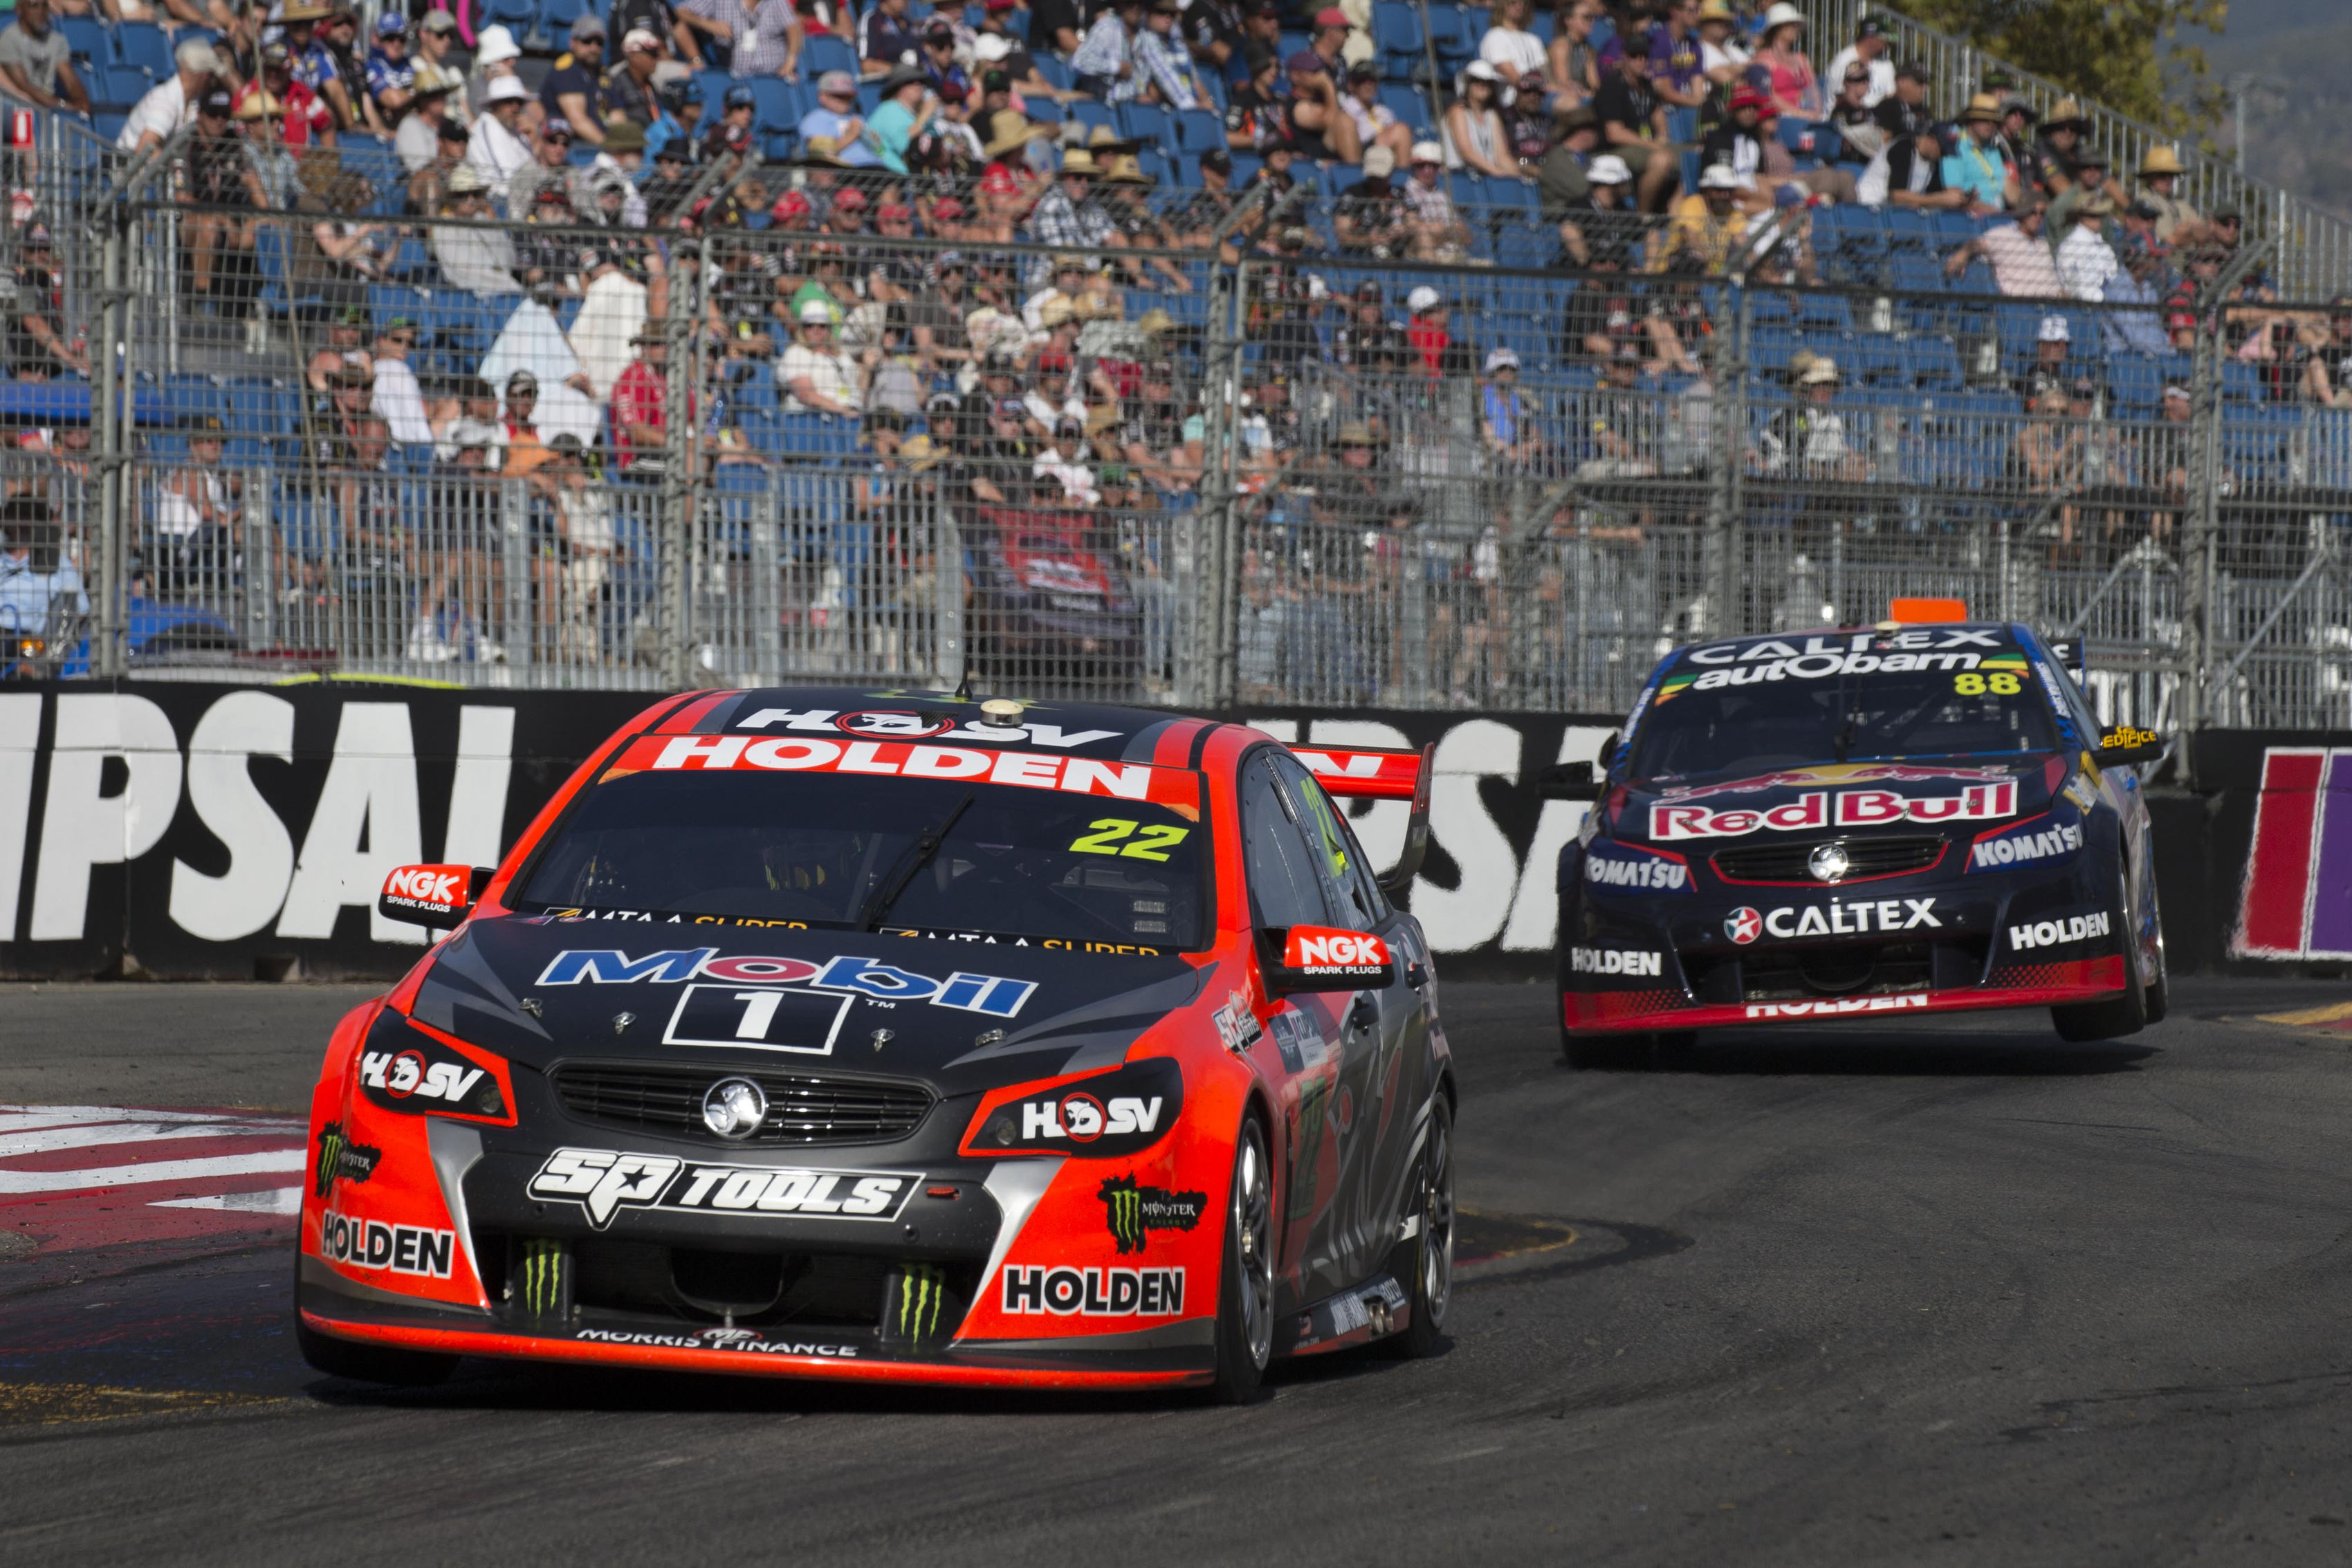 James Courtney of the Holden Racing Team winner of race 2 of the Clipsal 500,  at the Adelaide Street Circuit, Adelaide, South Australia, March 05, 2016.